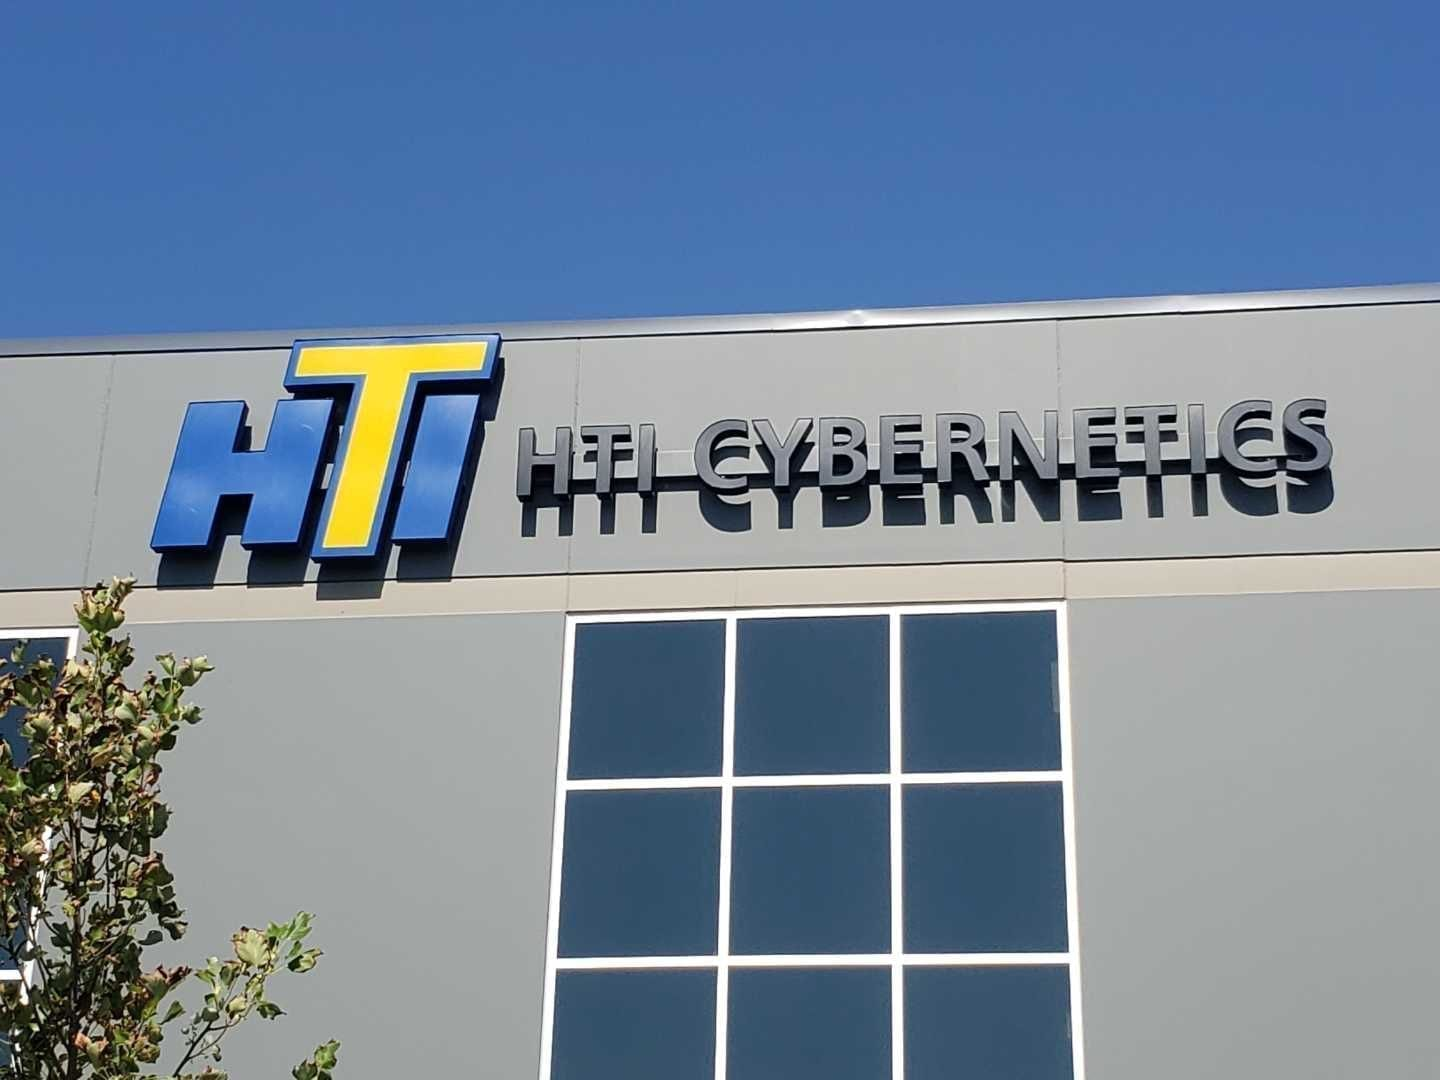 HTI Cybernetics building mounted channel letters